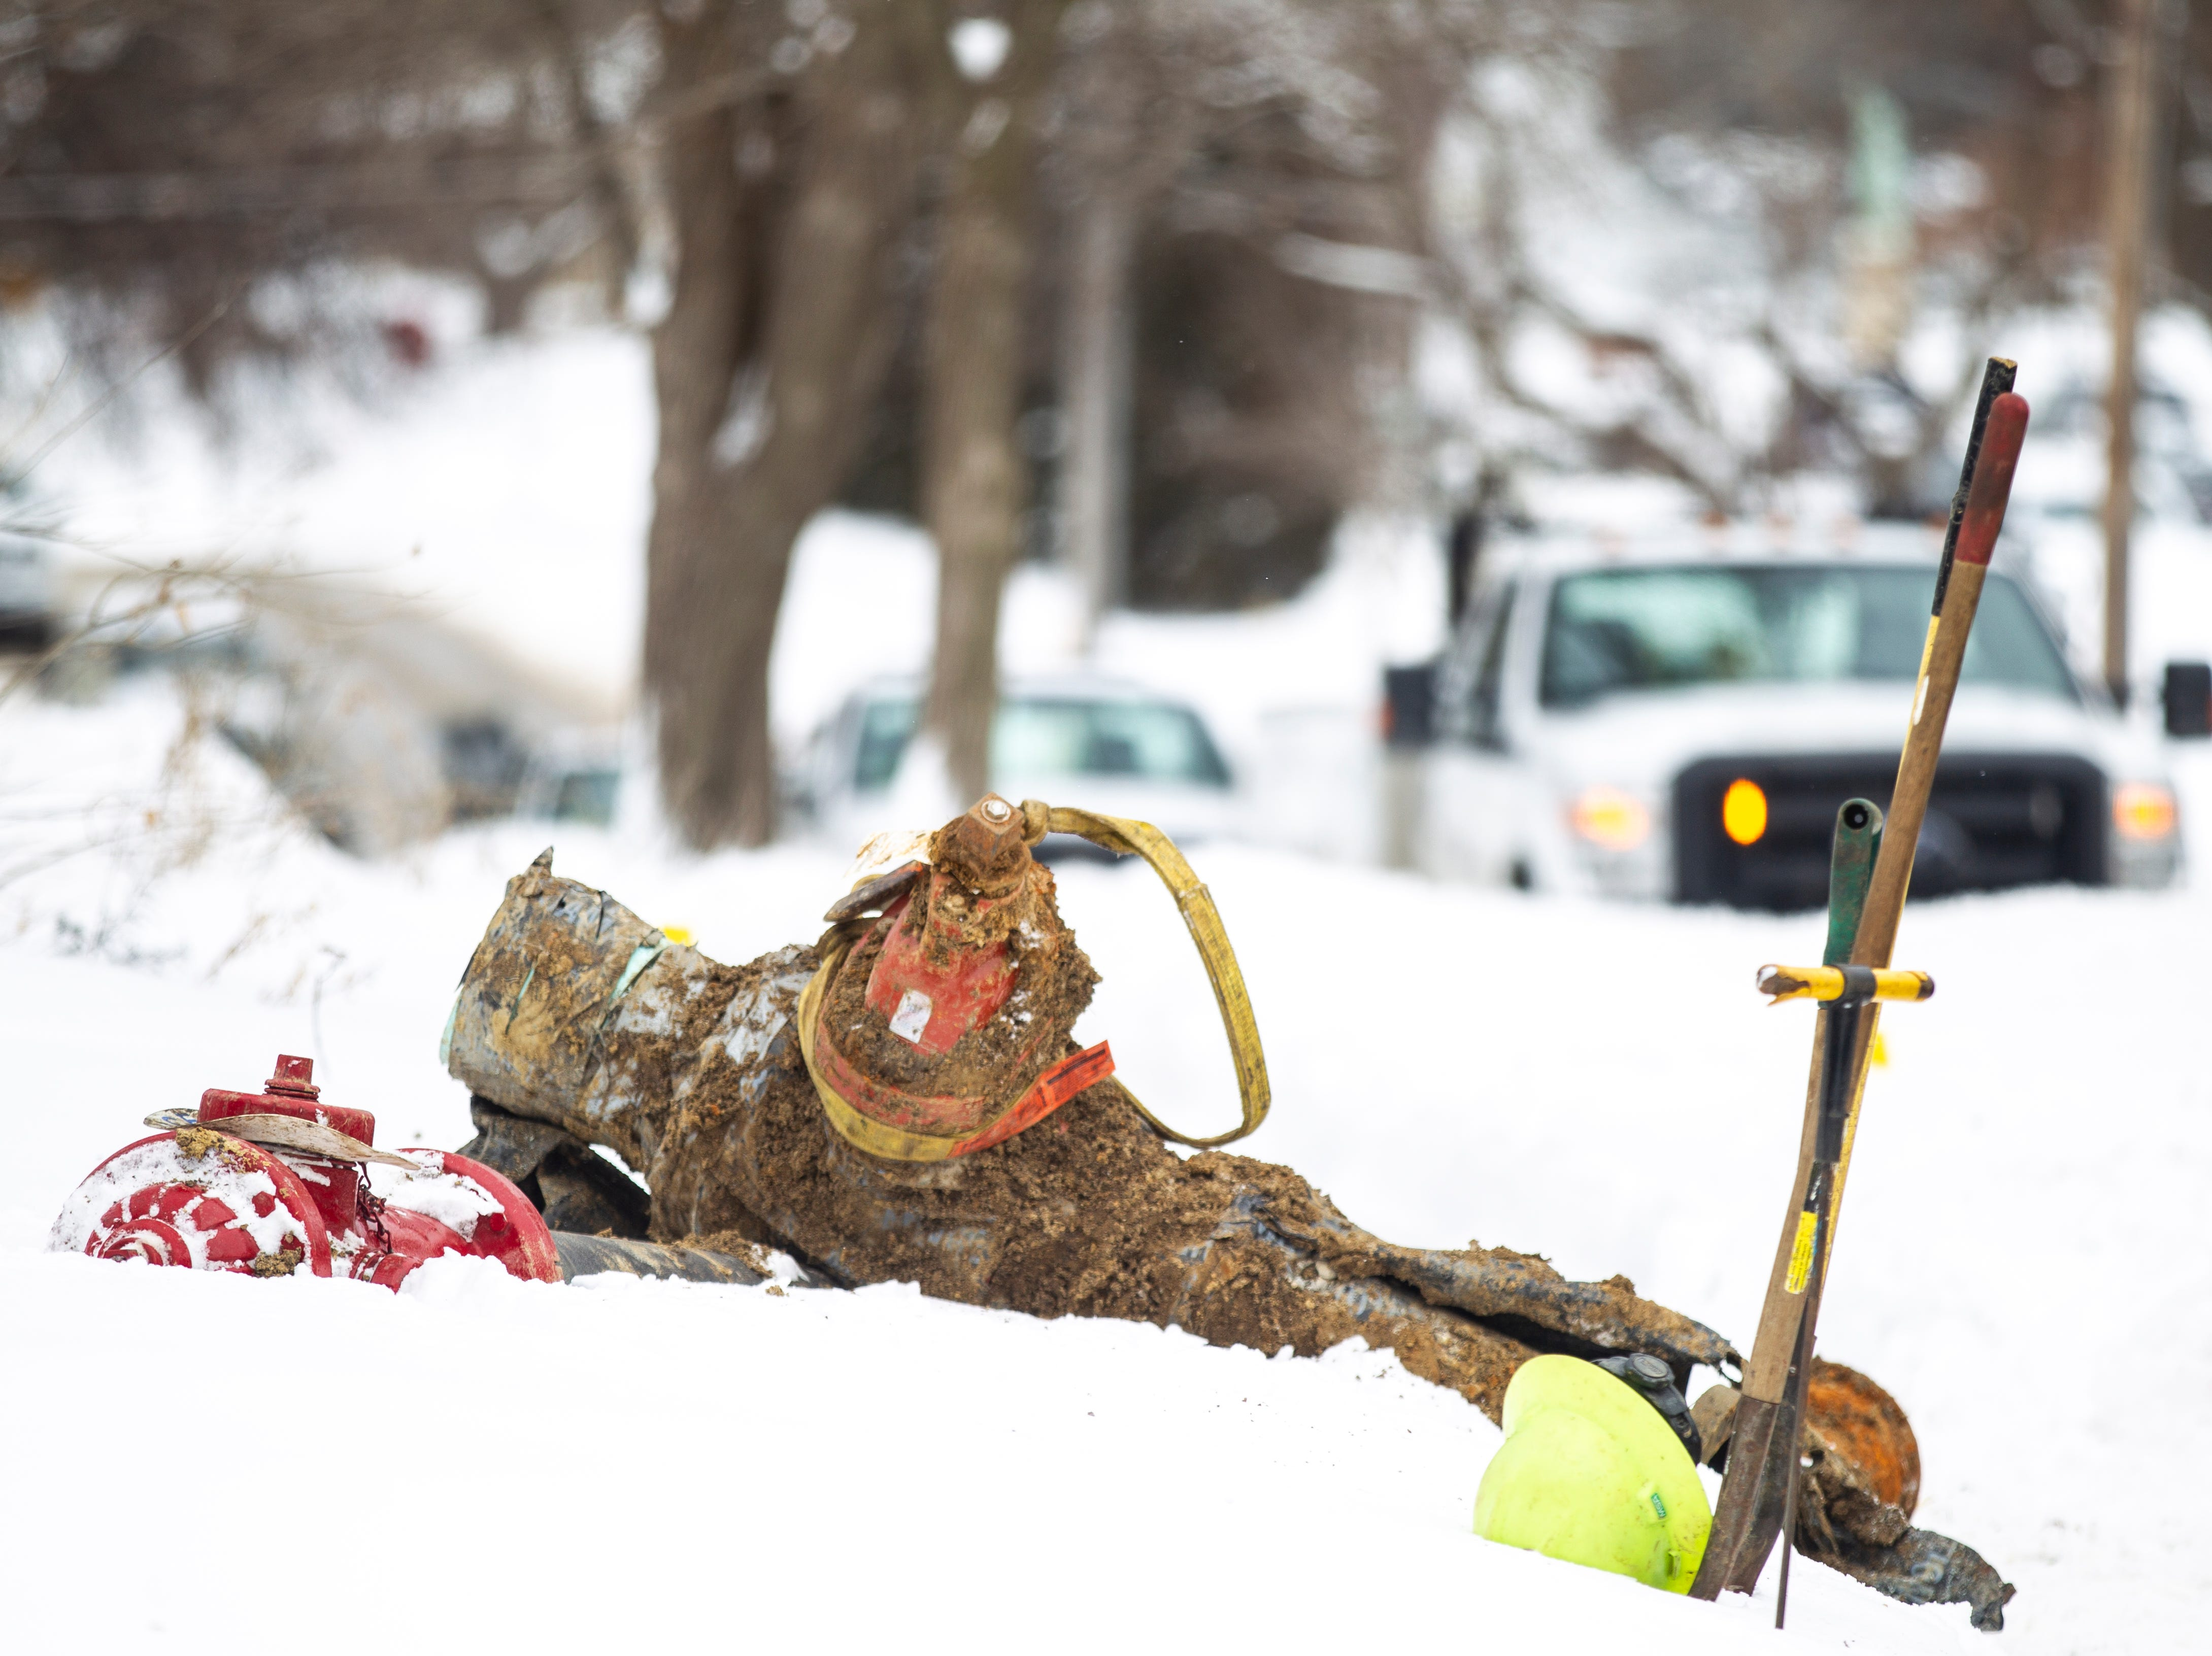 Iowa City Water Distribution employees work to fix a broken fire hydrant on Monday, Jan. 28, 2019, along Morningside Drive on the corner of Court Street in Iowa City, Iowa.